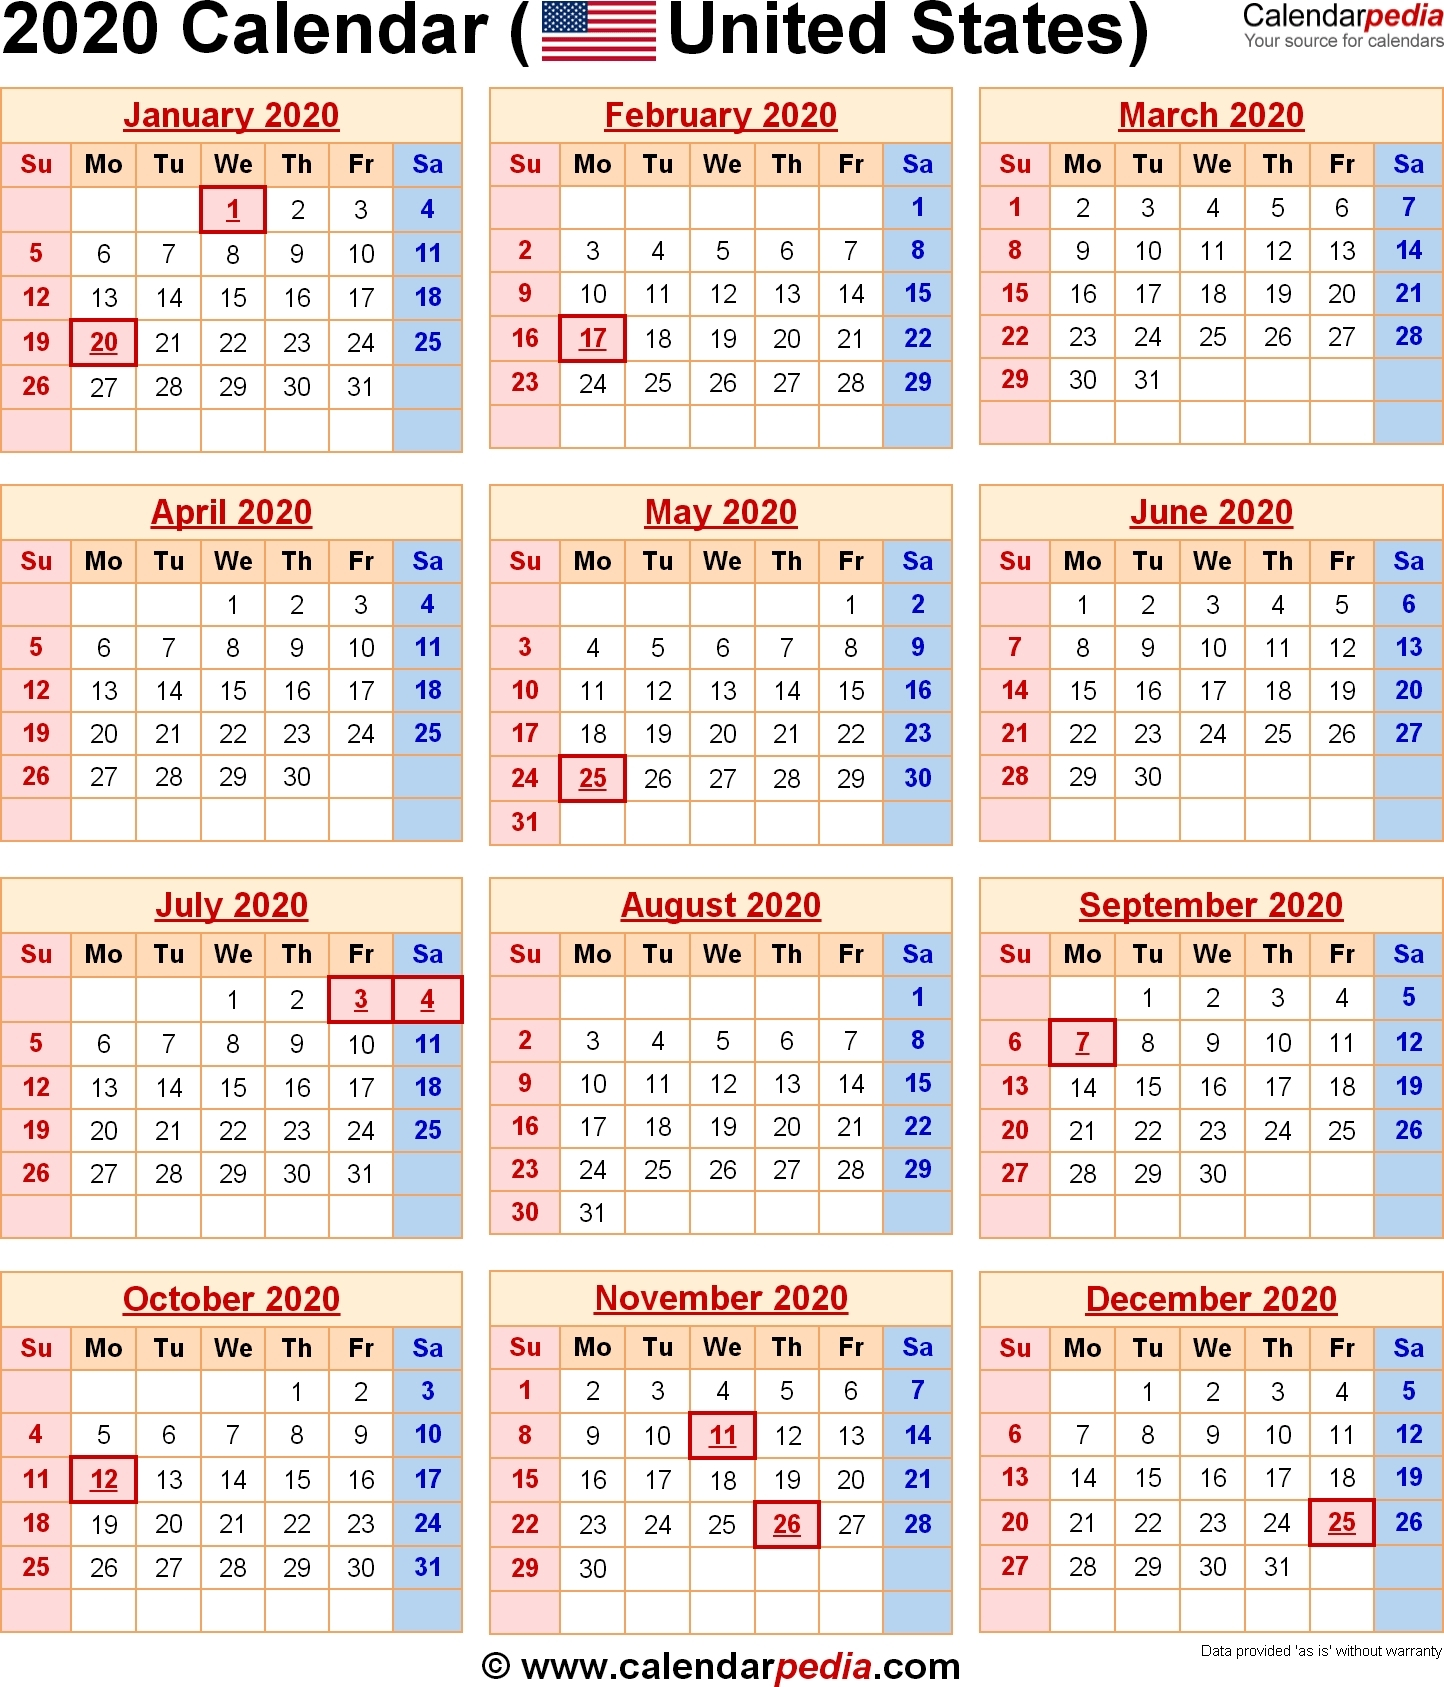 Incredible 2020 Holiday Calendar Us • Printable Blank-Calendar Indicating The Holidays